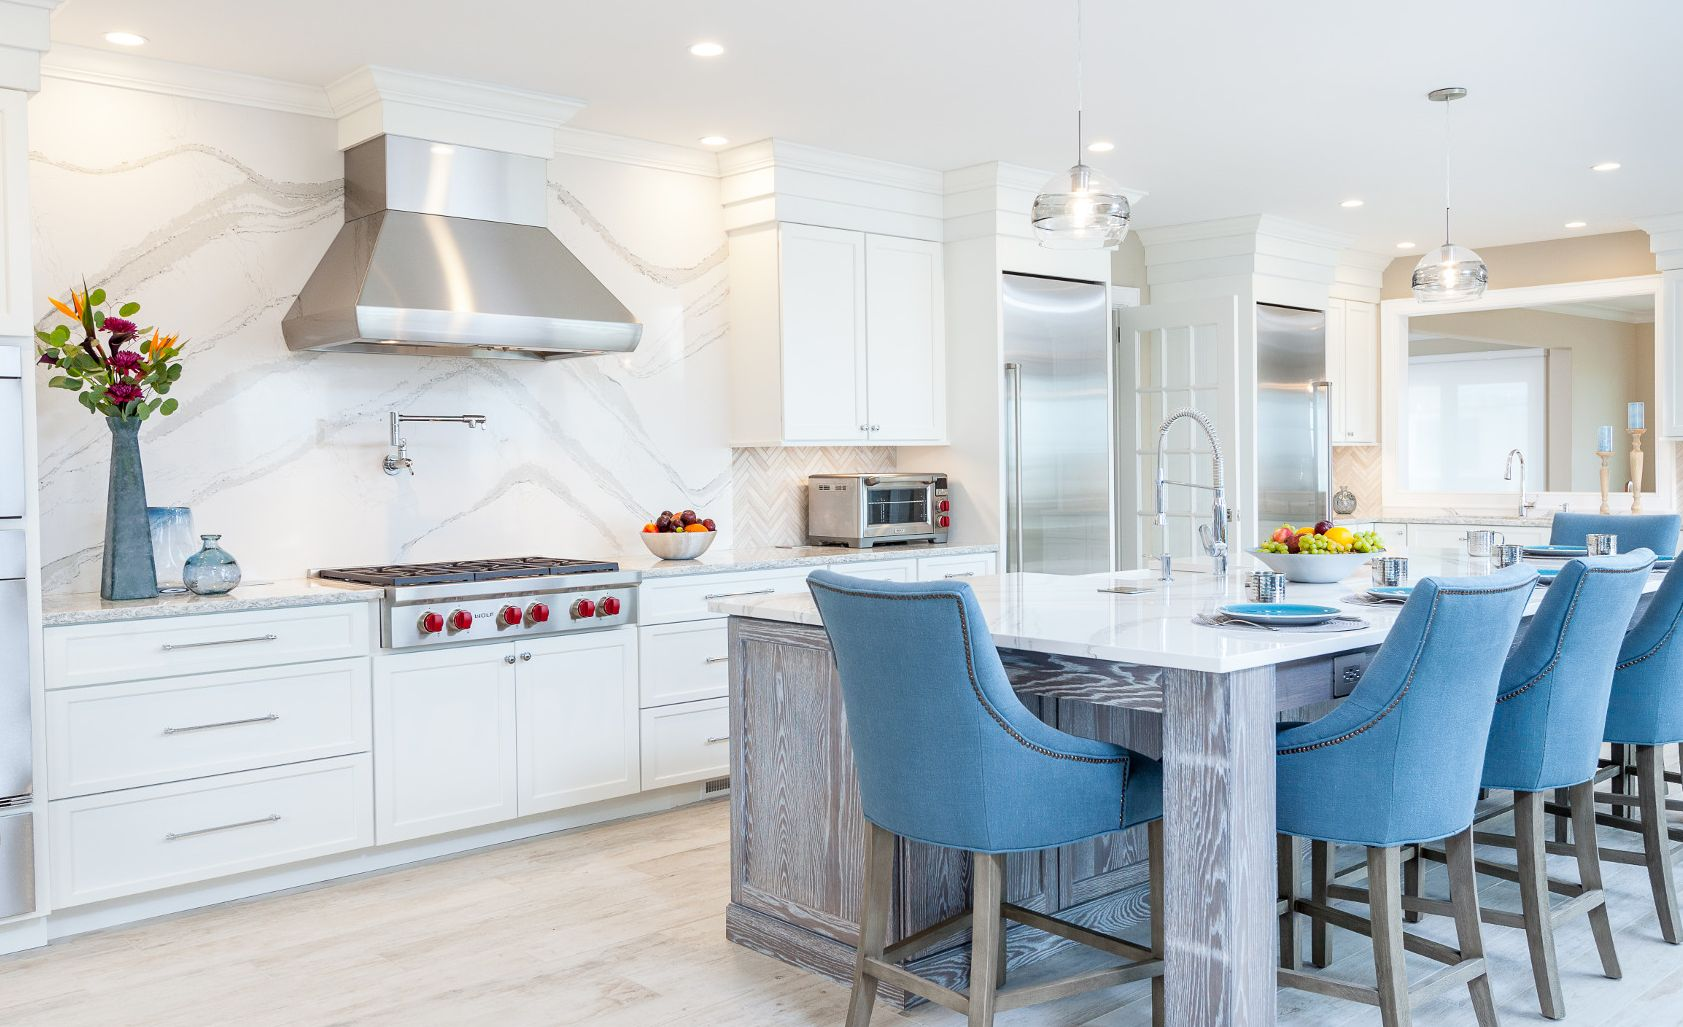 Cambria Brittanicca kitchen island and backsplash with blue stools.